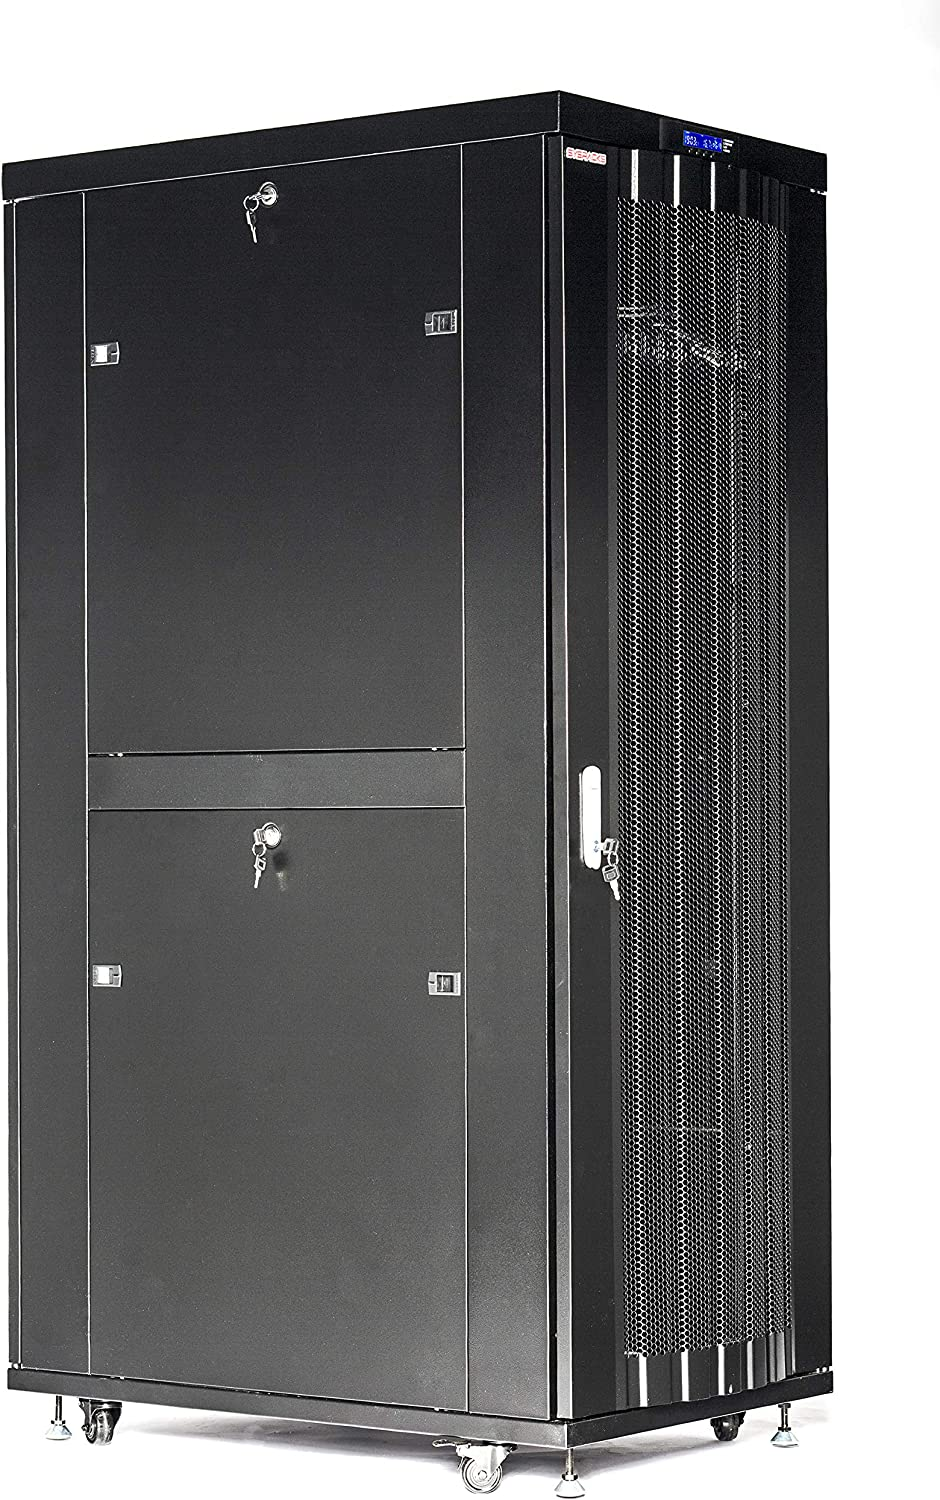 Sysracks 32U Server Rack Network Enclosure Data Cabinet 39 inch Deep Vented Doors Full Size Server Rack - LCD Screen- 4 Cooling Fans - 8-Way Power Strip - Shelf - Casters - Dust Tight Cable Entries